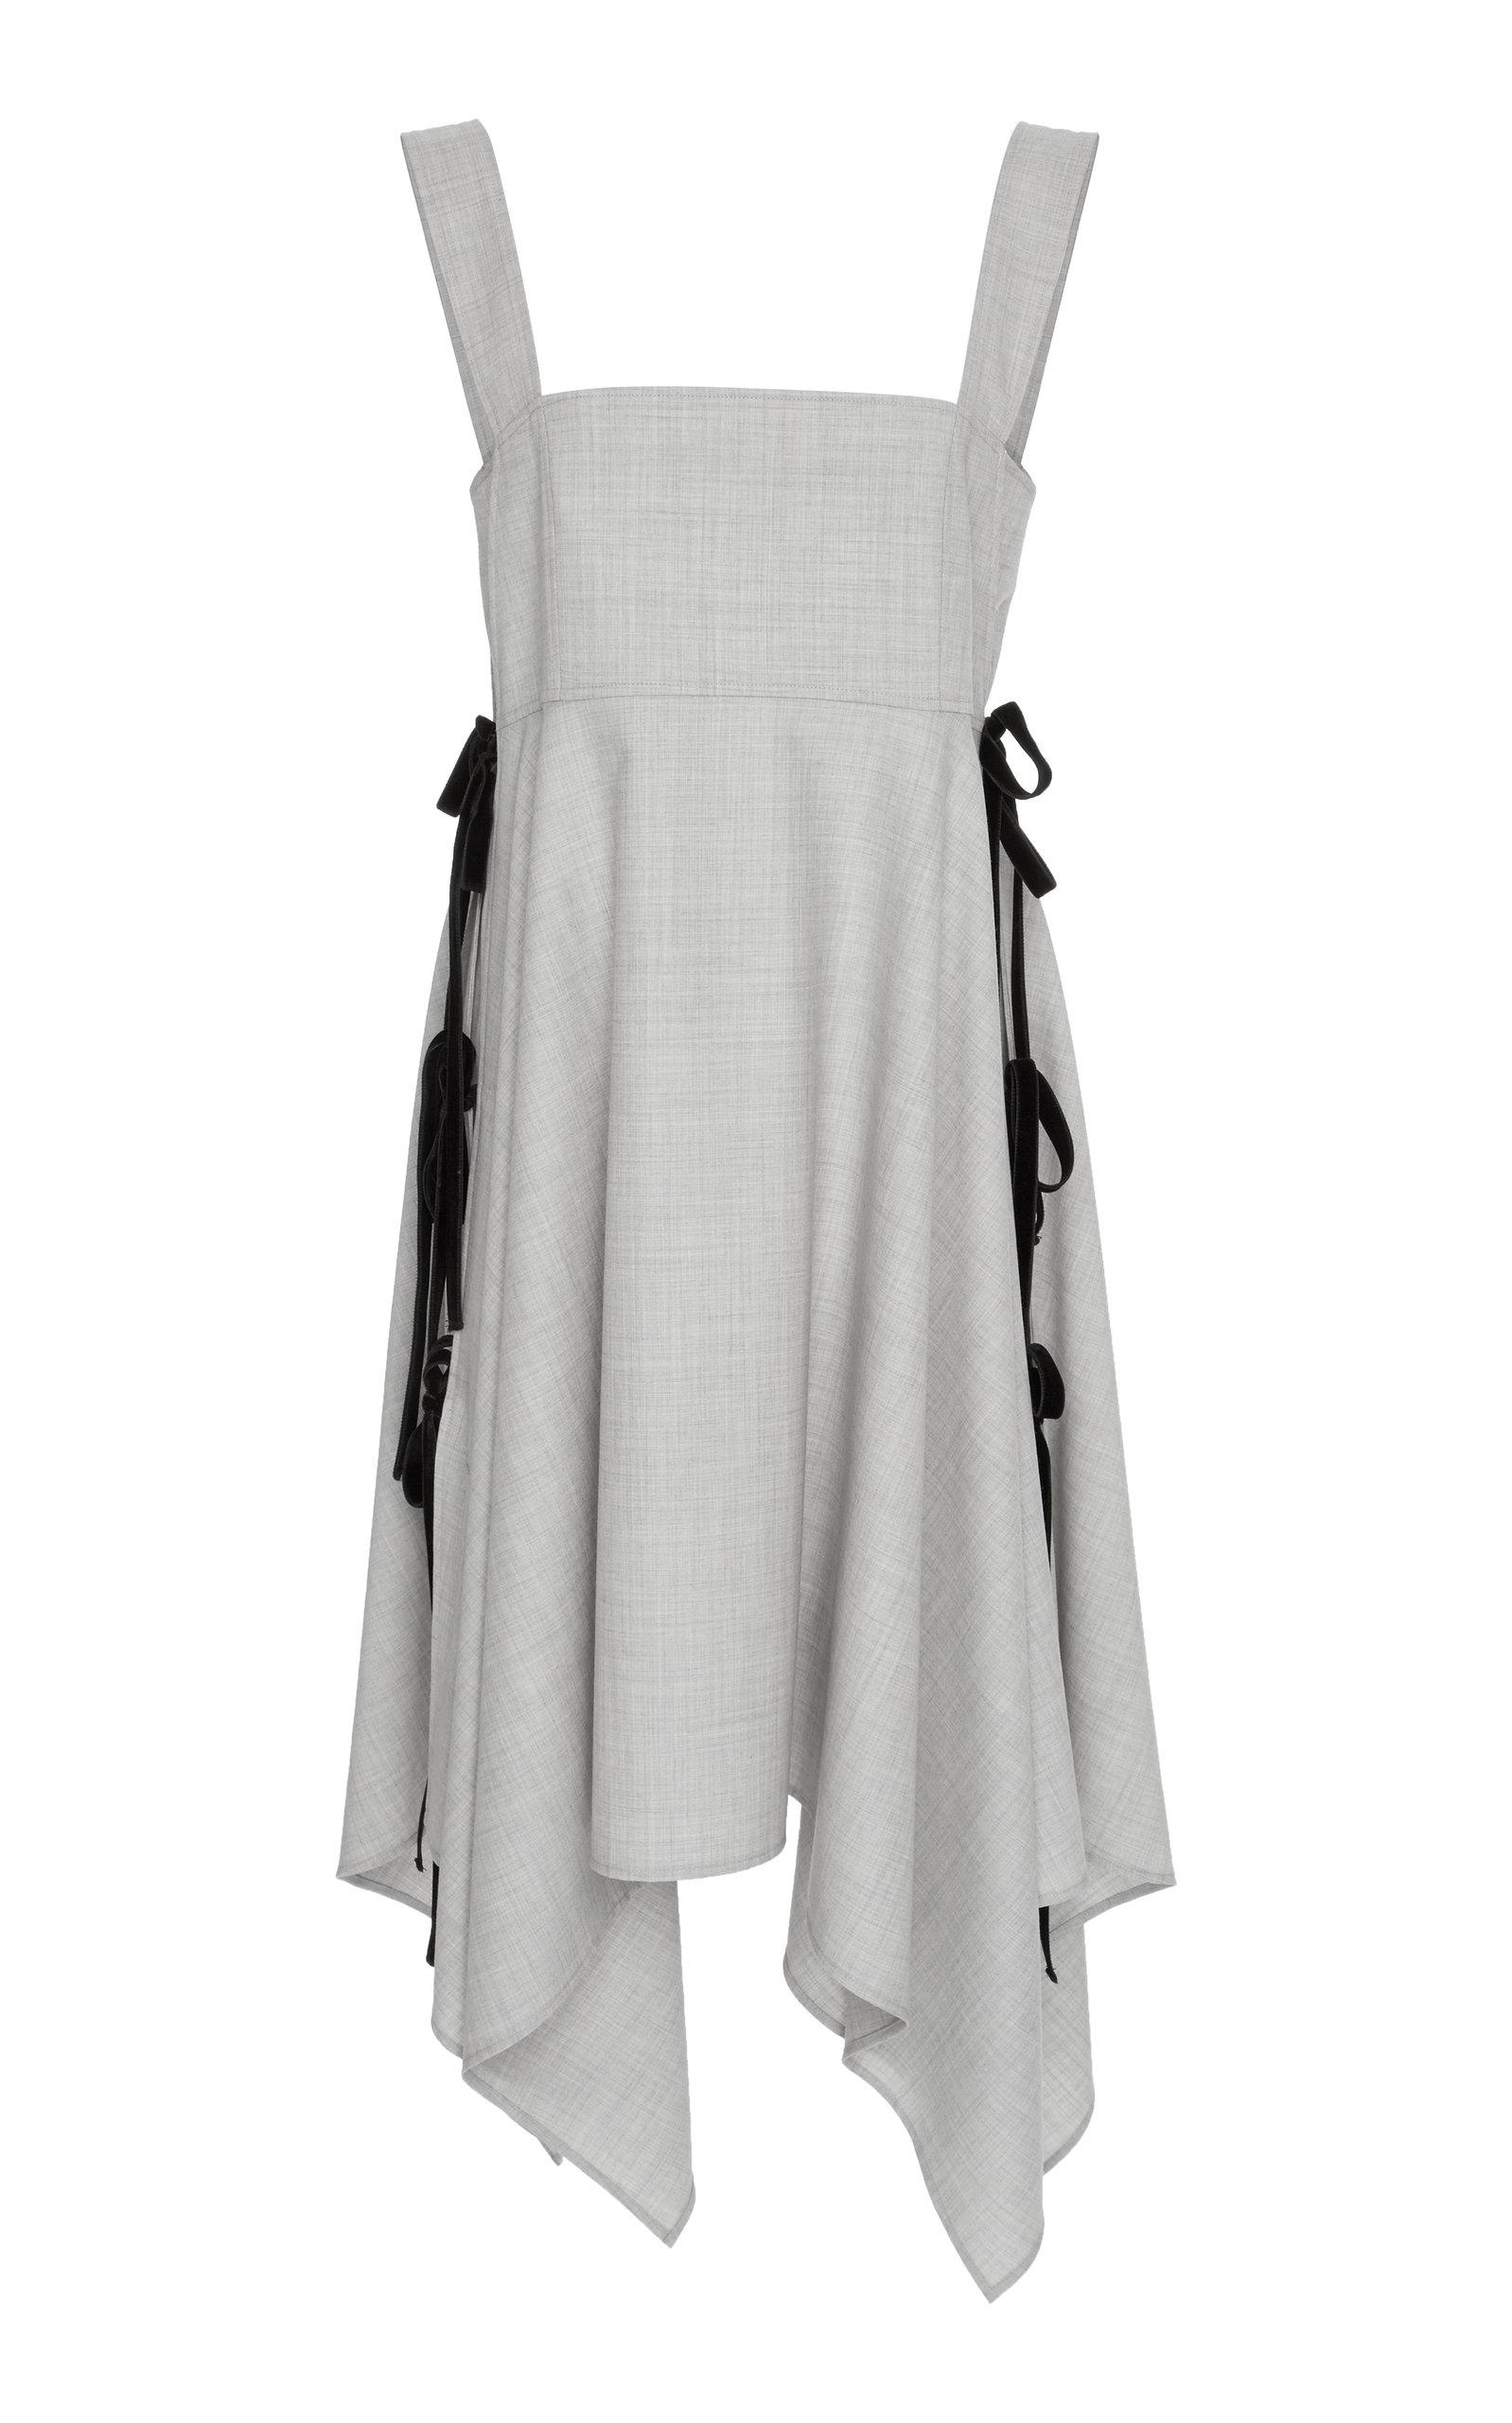 Adeam Velvet Trimmed Handkerchief Dress In Grey